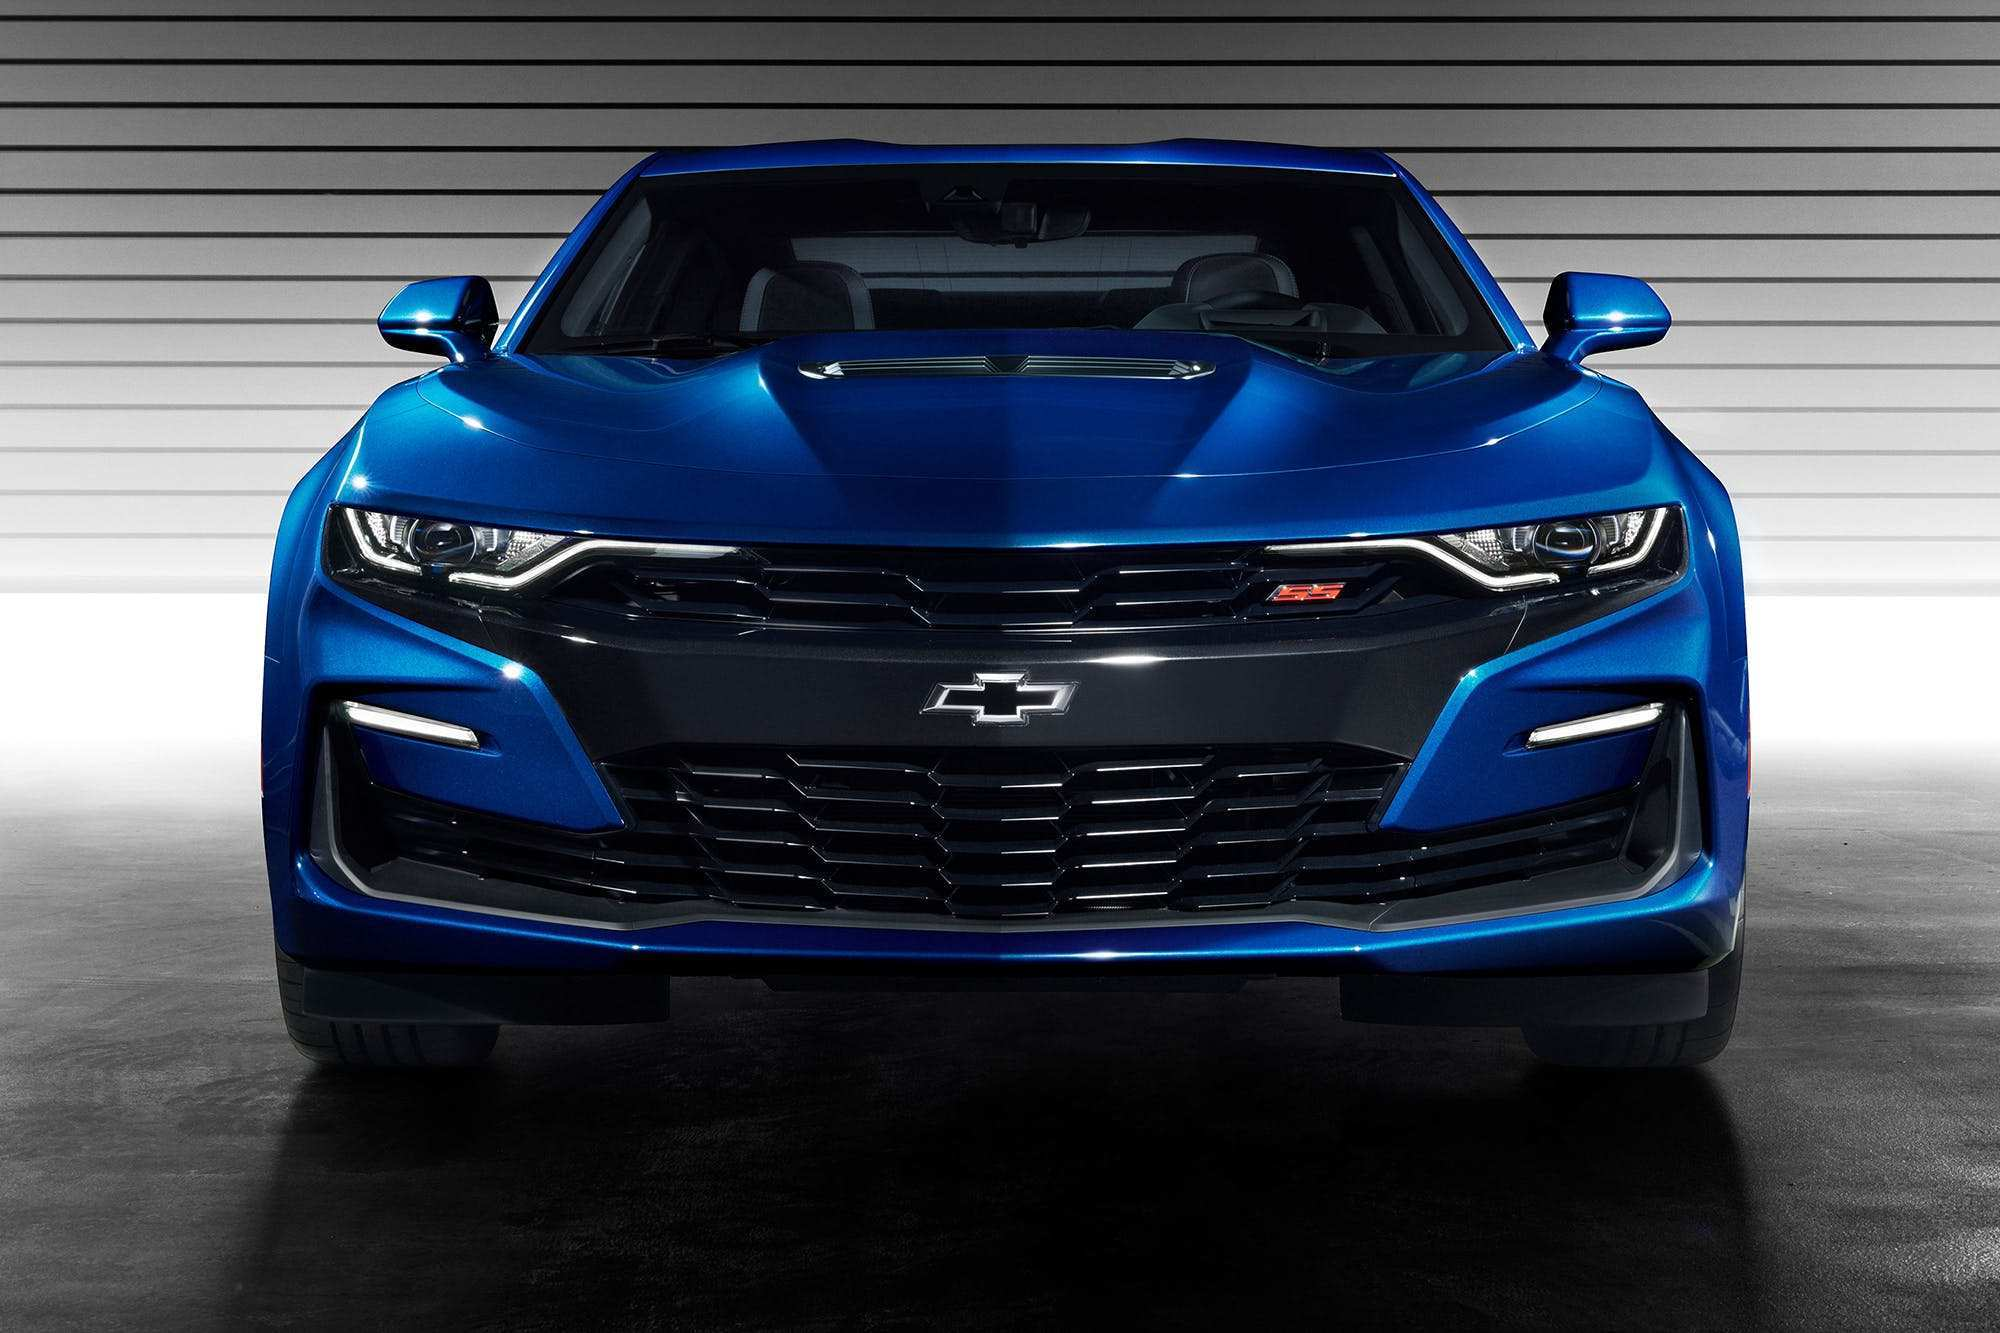 48 The Best 2020 Chevrolet Camaro Ss Performance